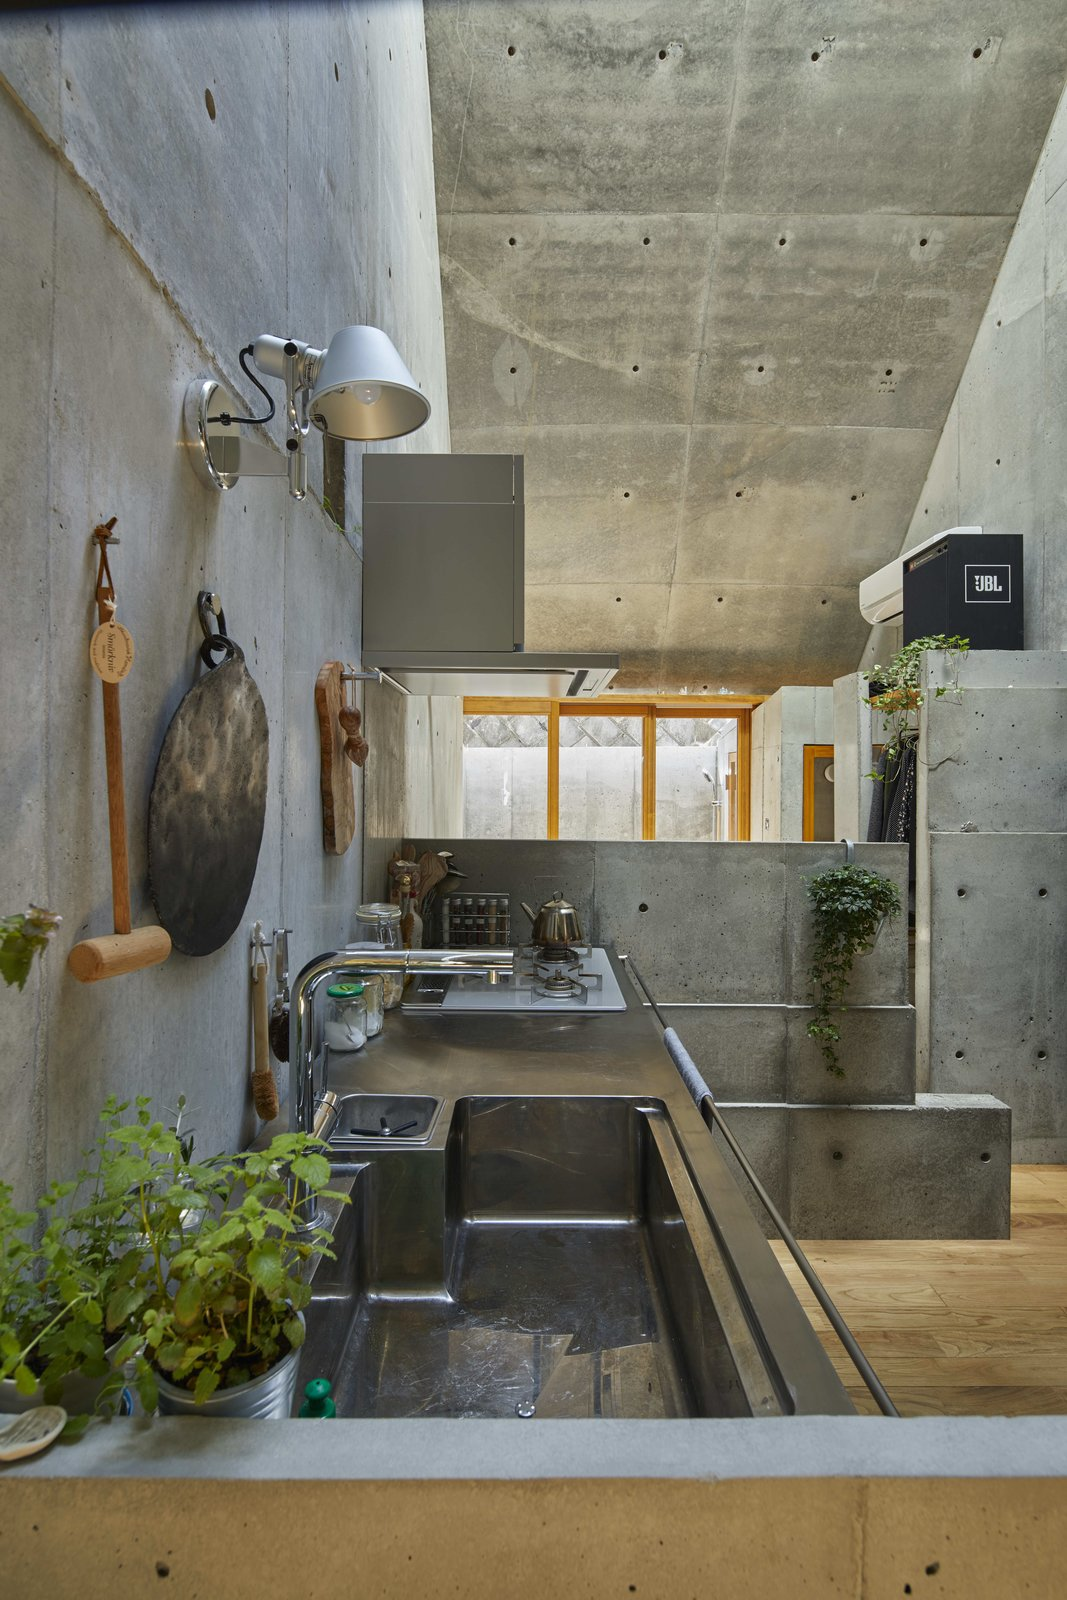 Kitchen, Medium Hardwood, Concrete, Wall, Range, Undermount, and Concrete The interior maintains a sense of texture from the concrete that isn't overwhelming because of the wood floors and high ceilings.  Best Kitchen Range Medium Hardwood Concrete Concrete Photos from A Concrete Tiny House in Tokyo Opens to the Sky—and the Street